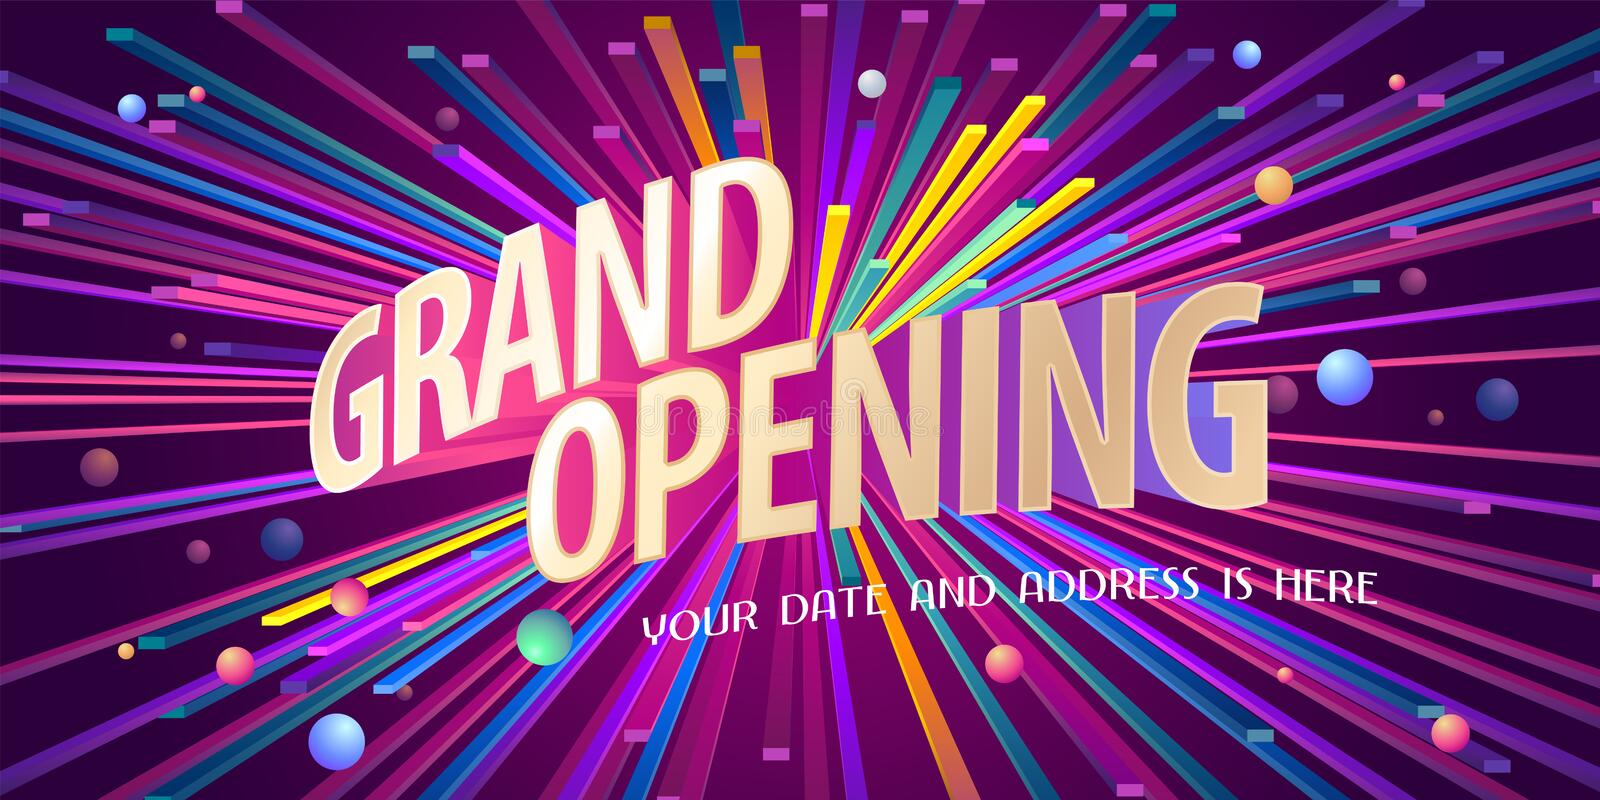 Grand opening vector background, banner. Grand opening vector background. Ribbon cutting ceremony design element as poster or advertising for opening event royalty free illustration